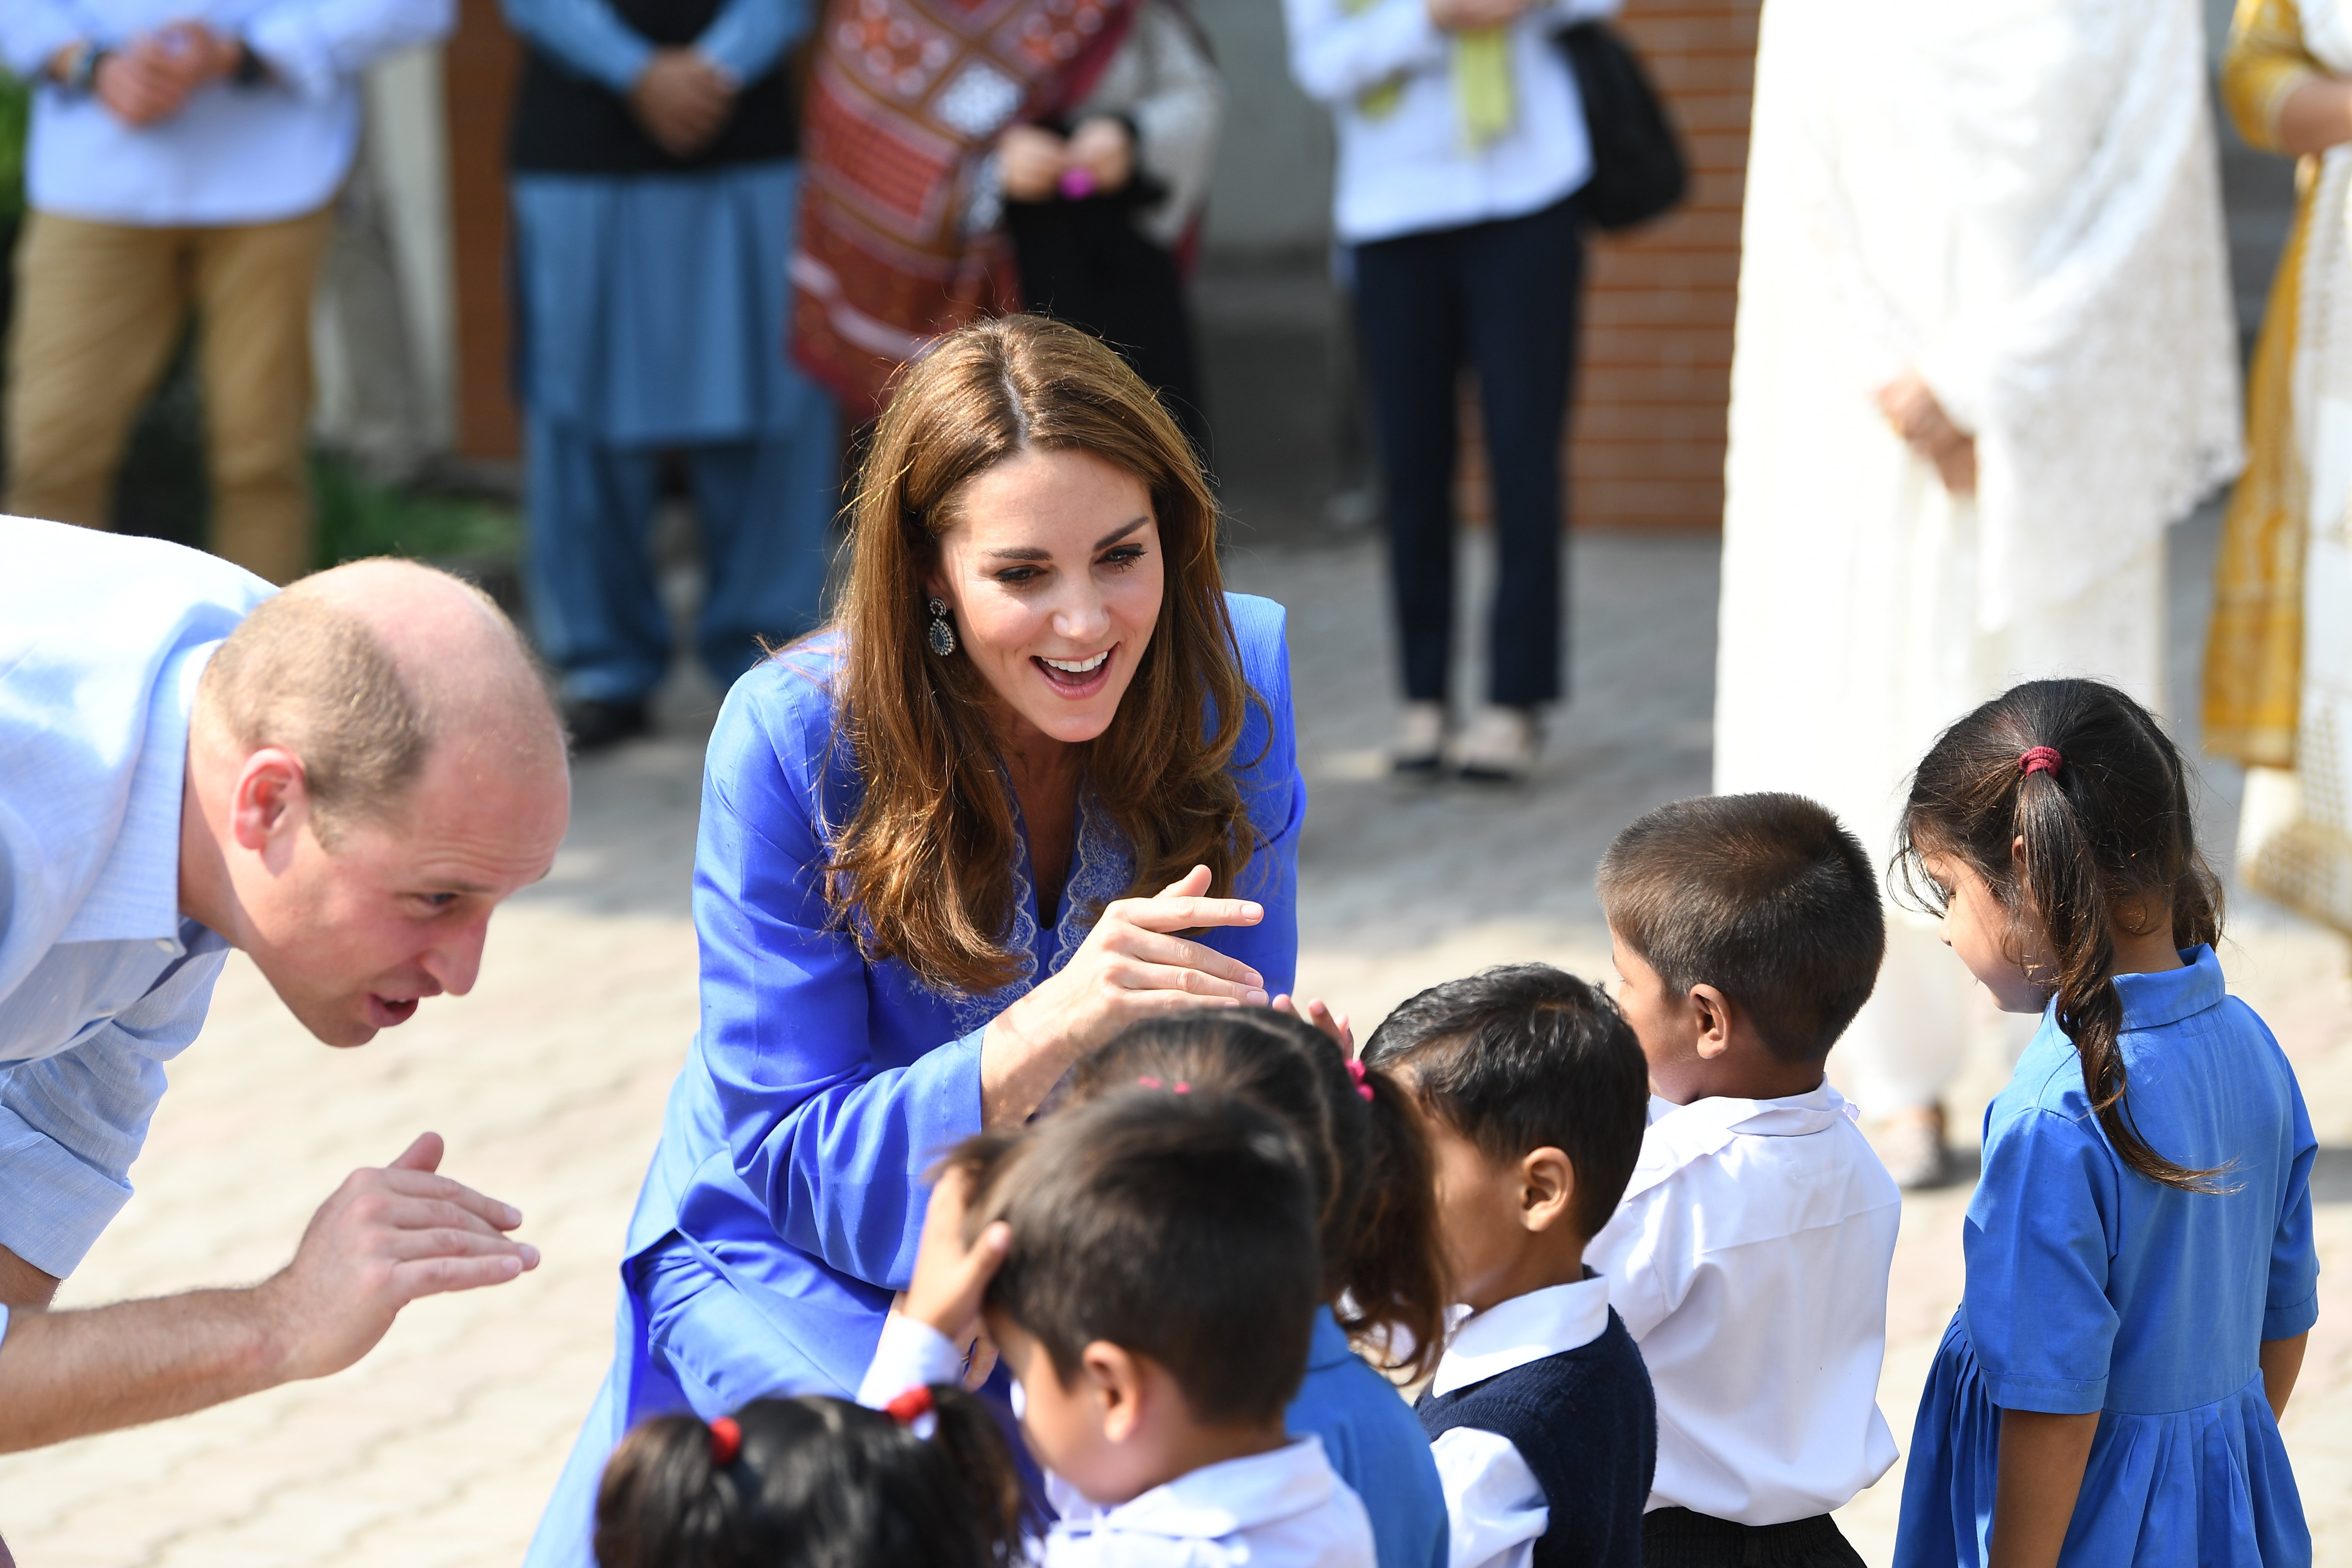 Earlier Wills and Kate met young pupils, who greeted them as they arrived at their school